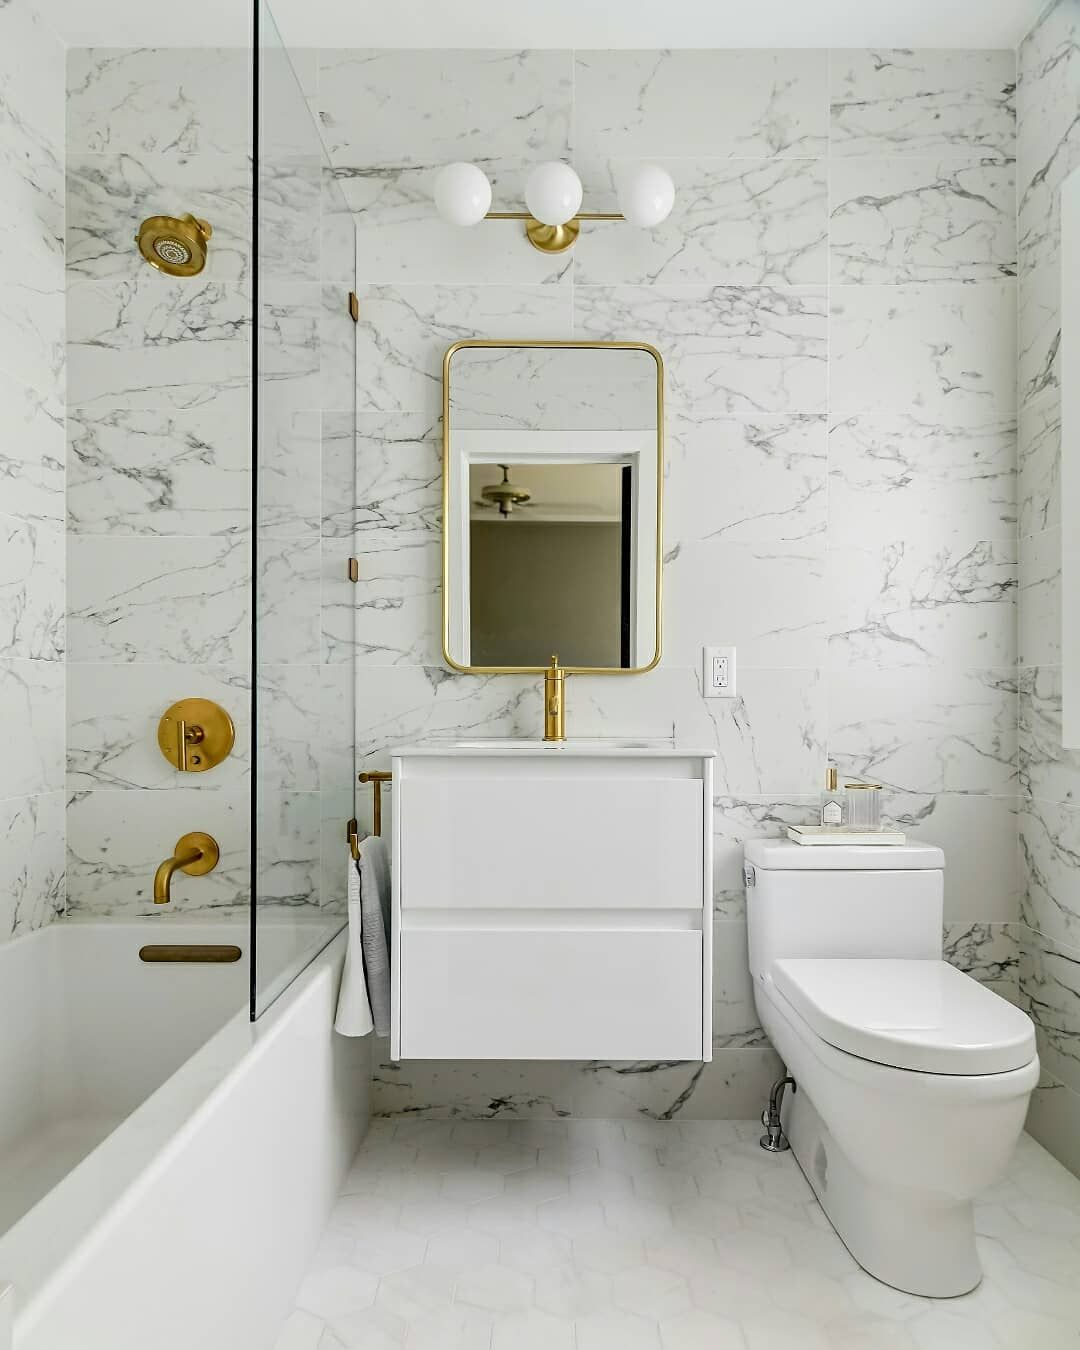 Small Spaces Can Be Glam Too In 2020 Tile Bathroom Small Bathroom Pictures Bathroom Makeover